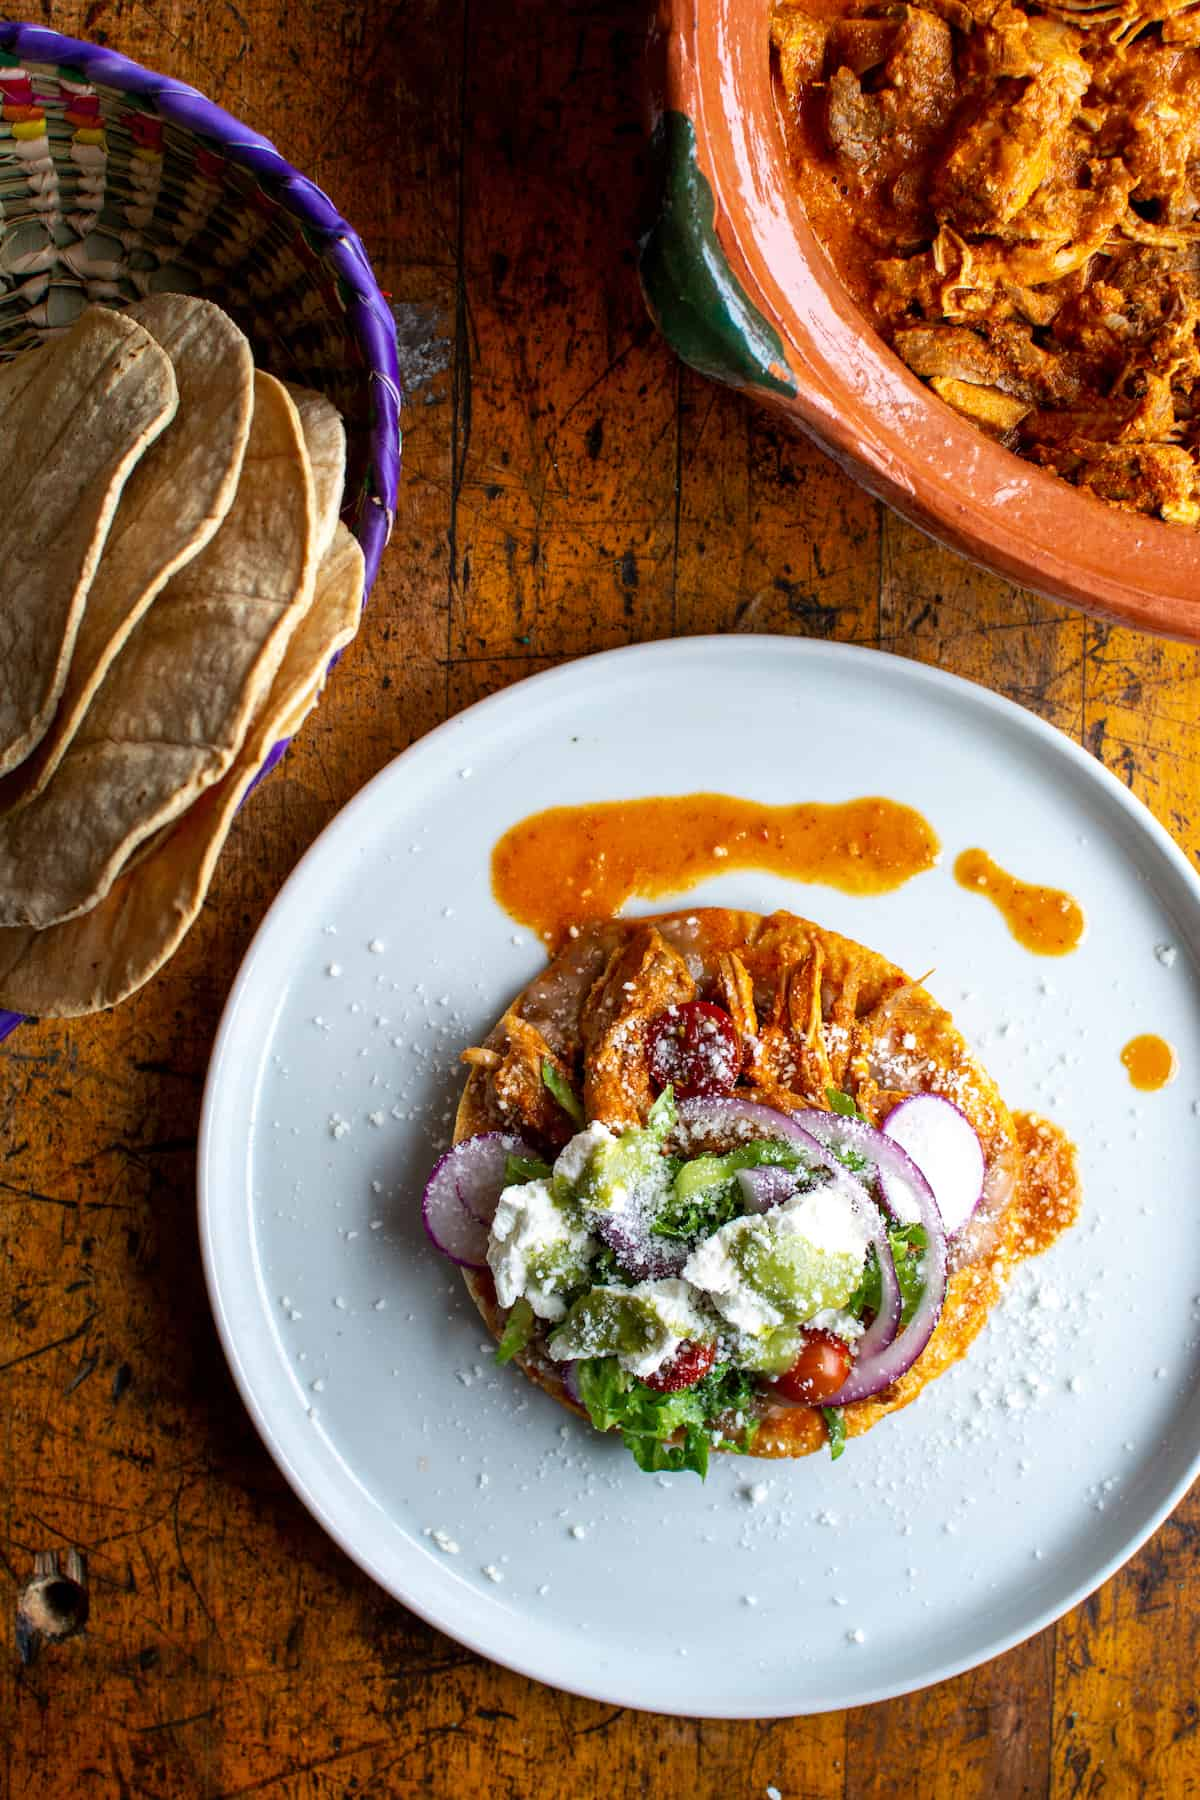 A pork tostada sitting on a white plate with a basket of tostadas next to it and a ceramic dish filled with braised pork.